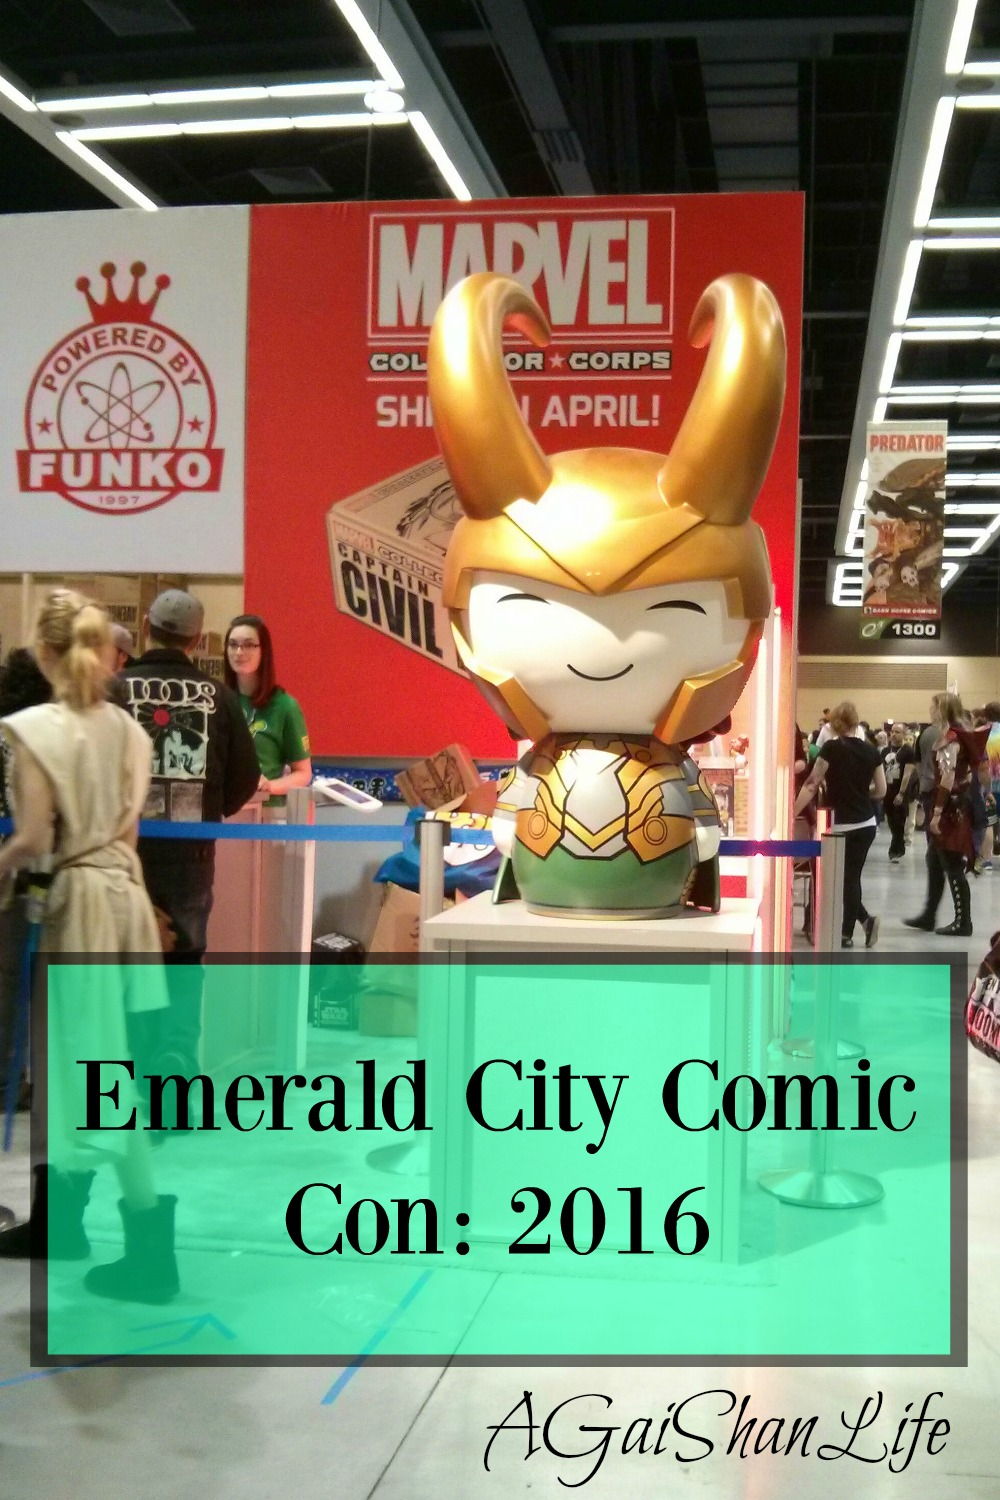 Emerald City Comic Con 2016: We'll definitely do this again